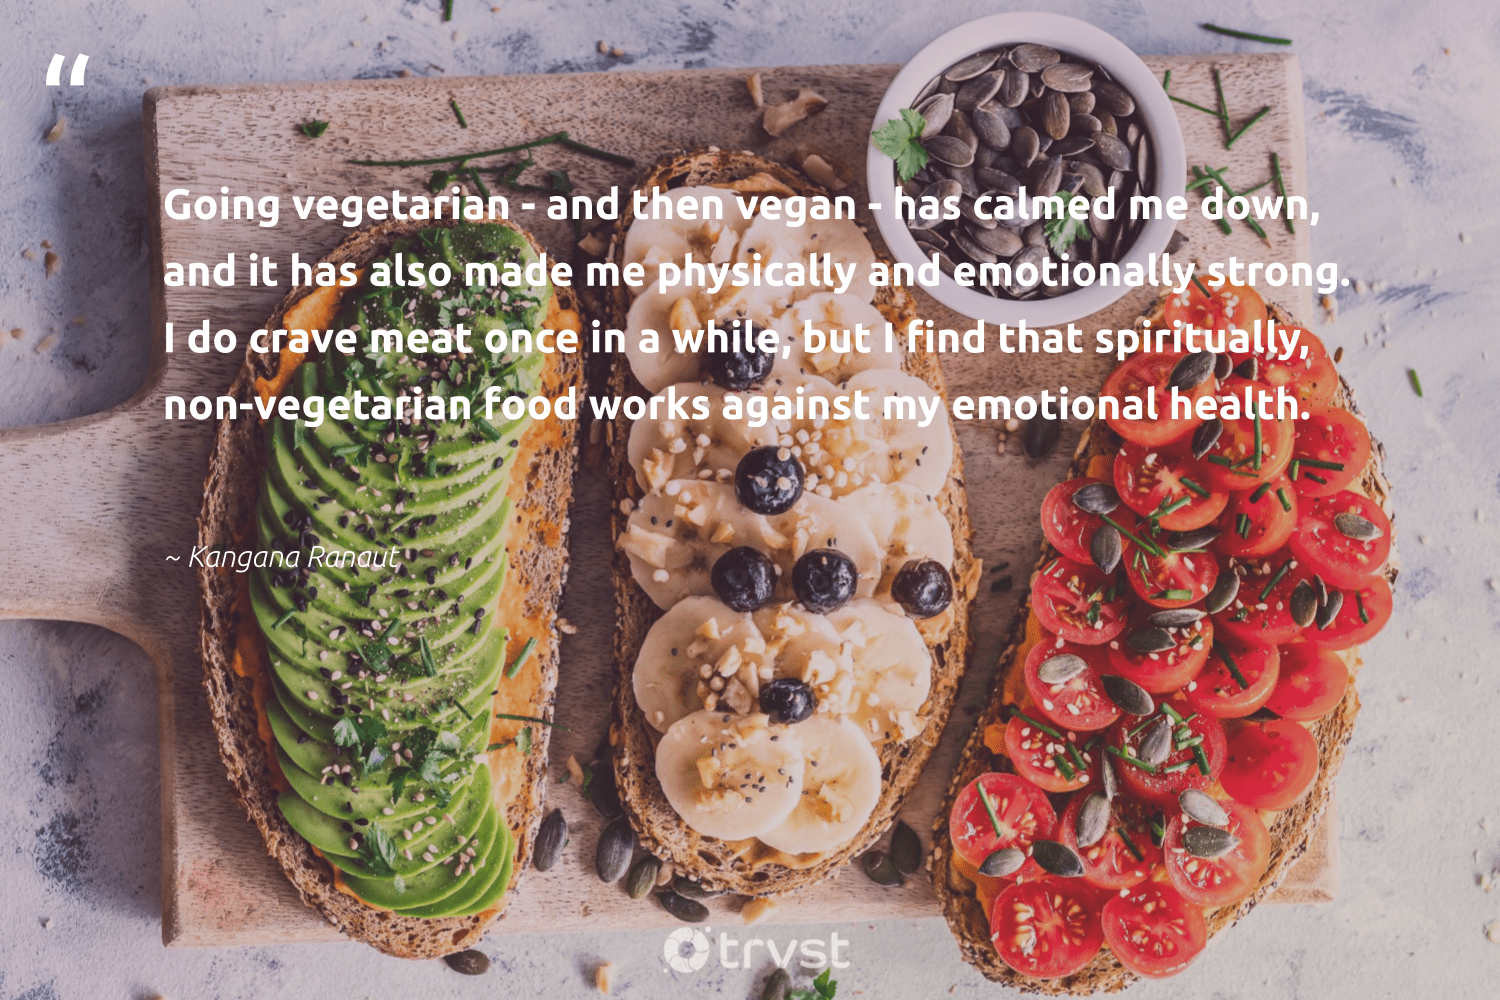 """Going vegetarian - and then vegan - has calmed me down, and it has also made me physically and emotionally strong. I do crave meat once in a while, but I find that spiritually, non-vegetarian food works against my emotional health.""  - Kangana Ranaut #trvst #quotes #vegan #food #health #vegetarian #veggie #foodforthepoor #bethechange #greenliving #beinspired #govegan"